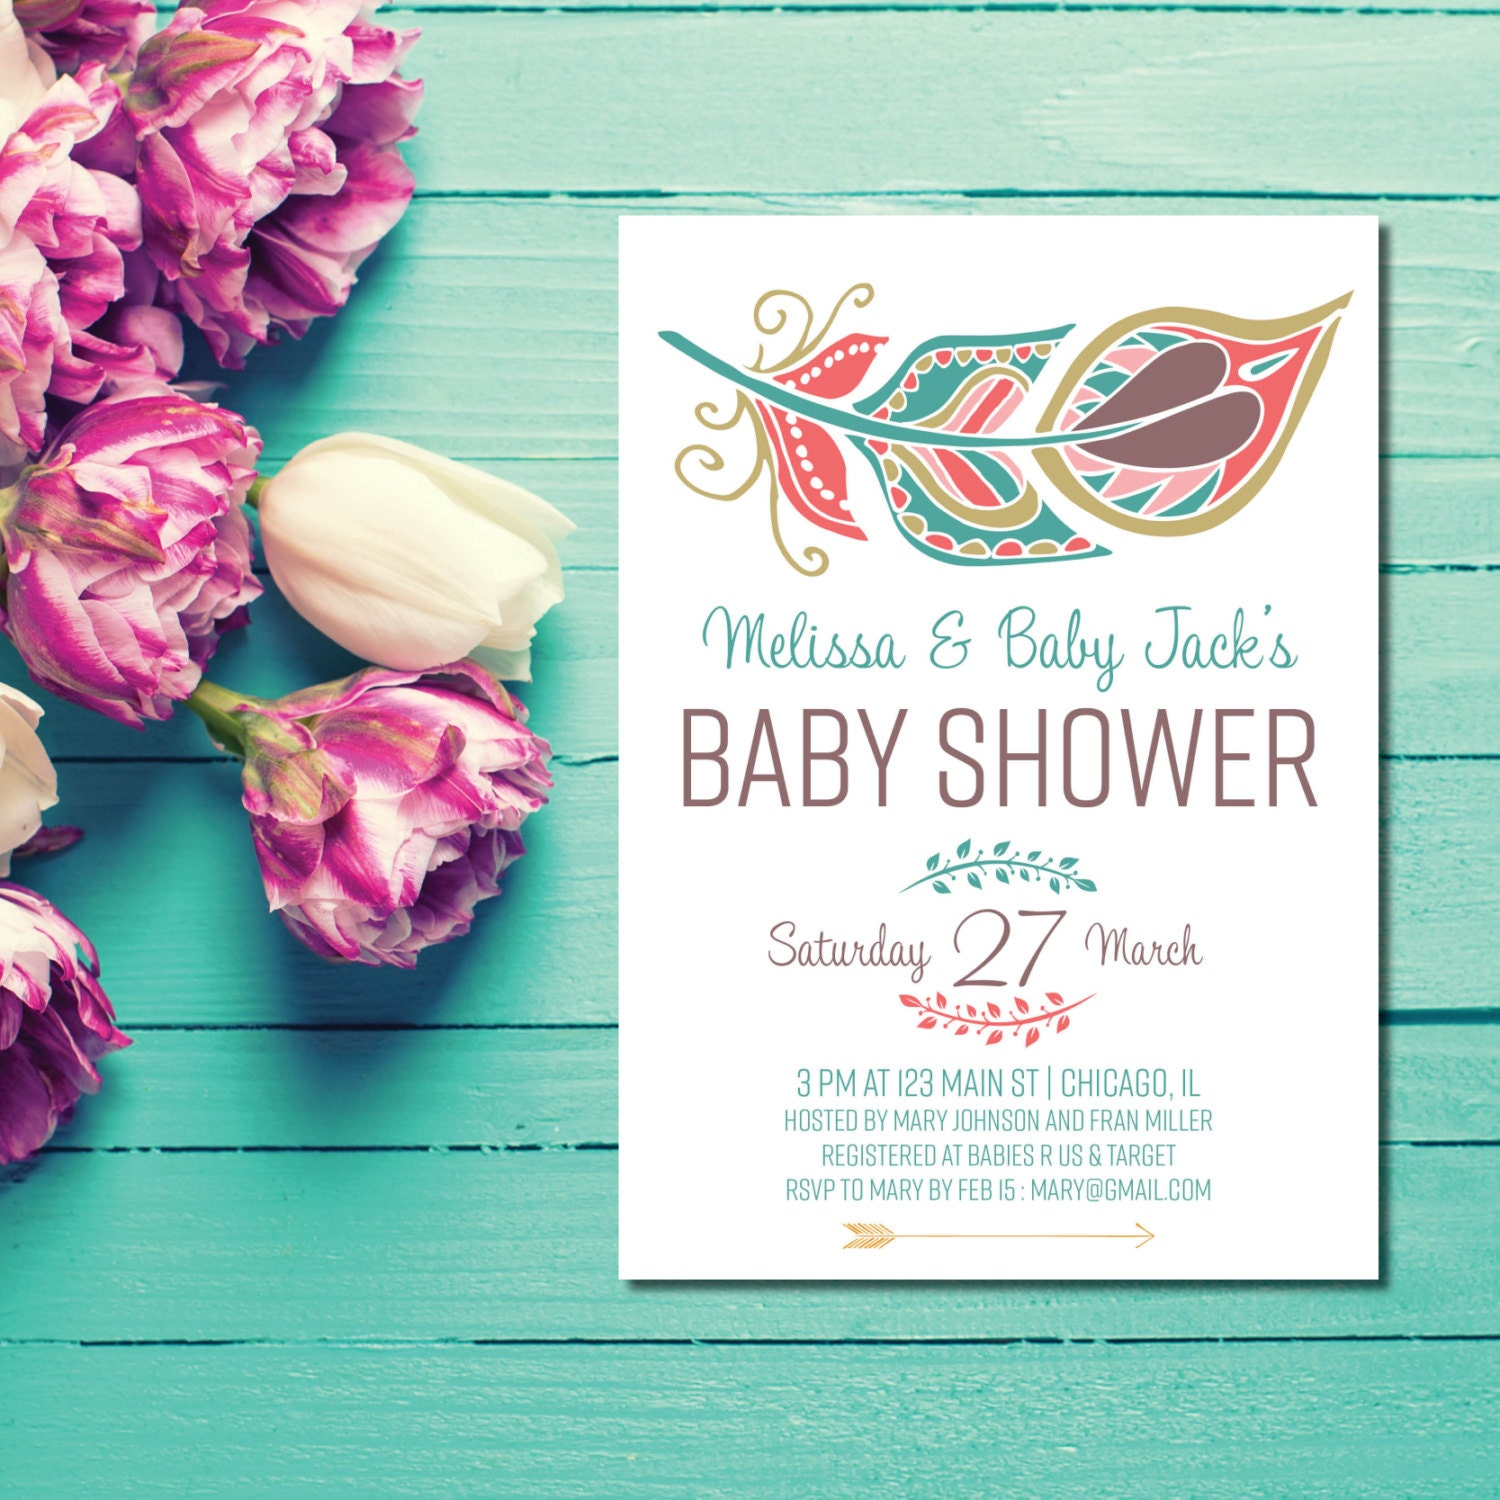 Boho Chic Baby Shower Invitations Boho Hippie Baby Shower